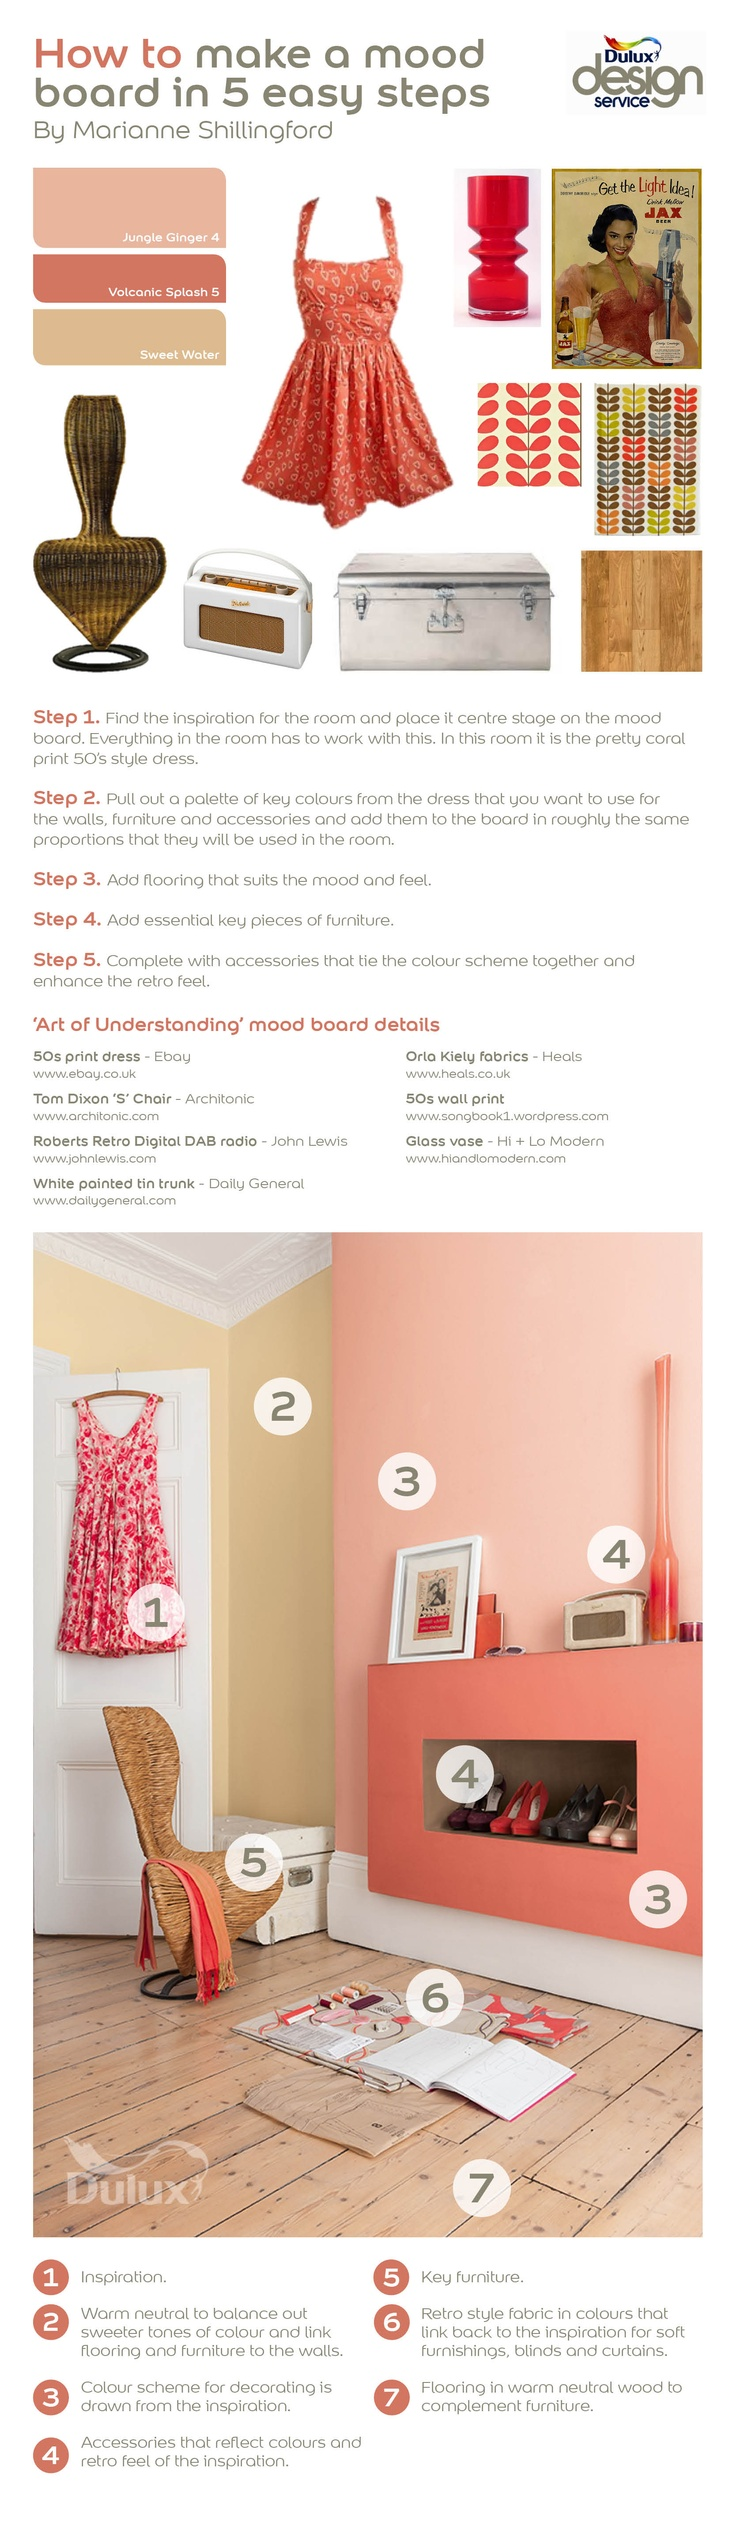 How to make a mood board in 5 easy steps, by Marianne Shillingford of the Dulux Design Service.